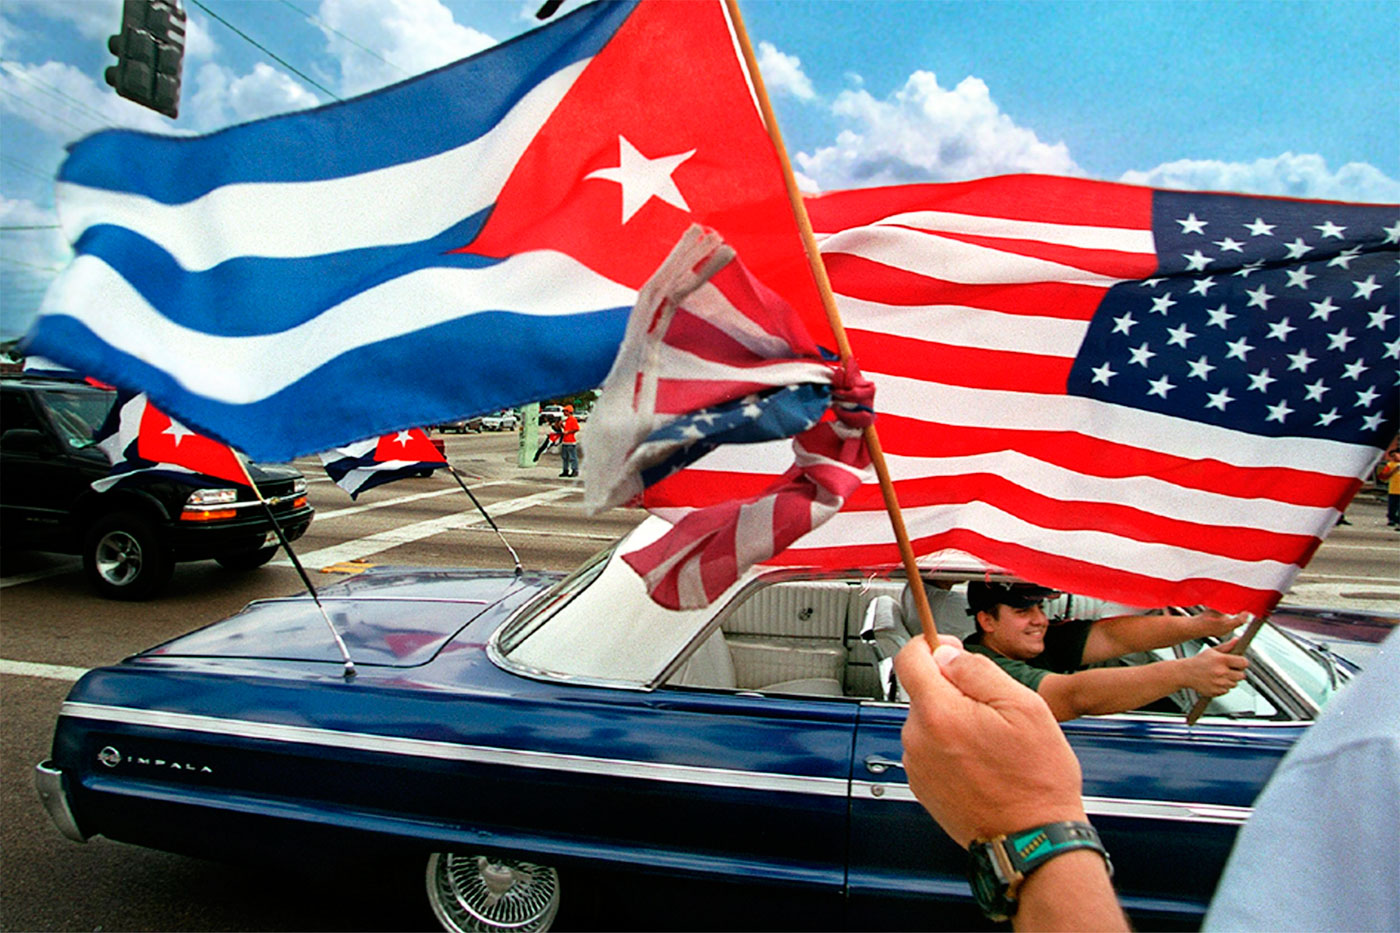 an analysis of the united states relationship with china kosovo and cuba Castro's cuba also had a highly antagonistic relationship with the united states-most notably resulting in the bay of pigs invasion and the cuban missile crisis.